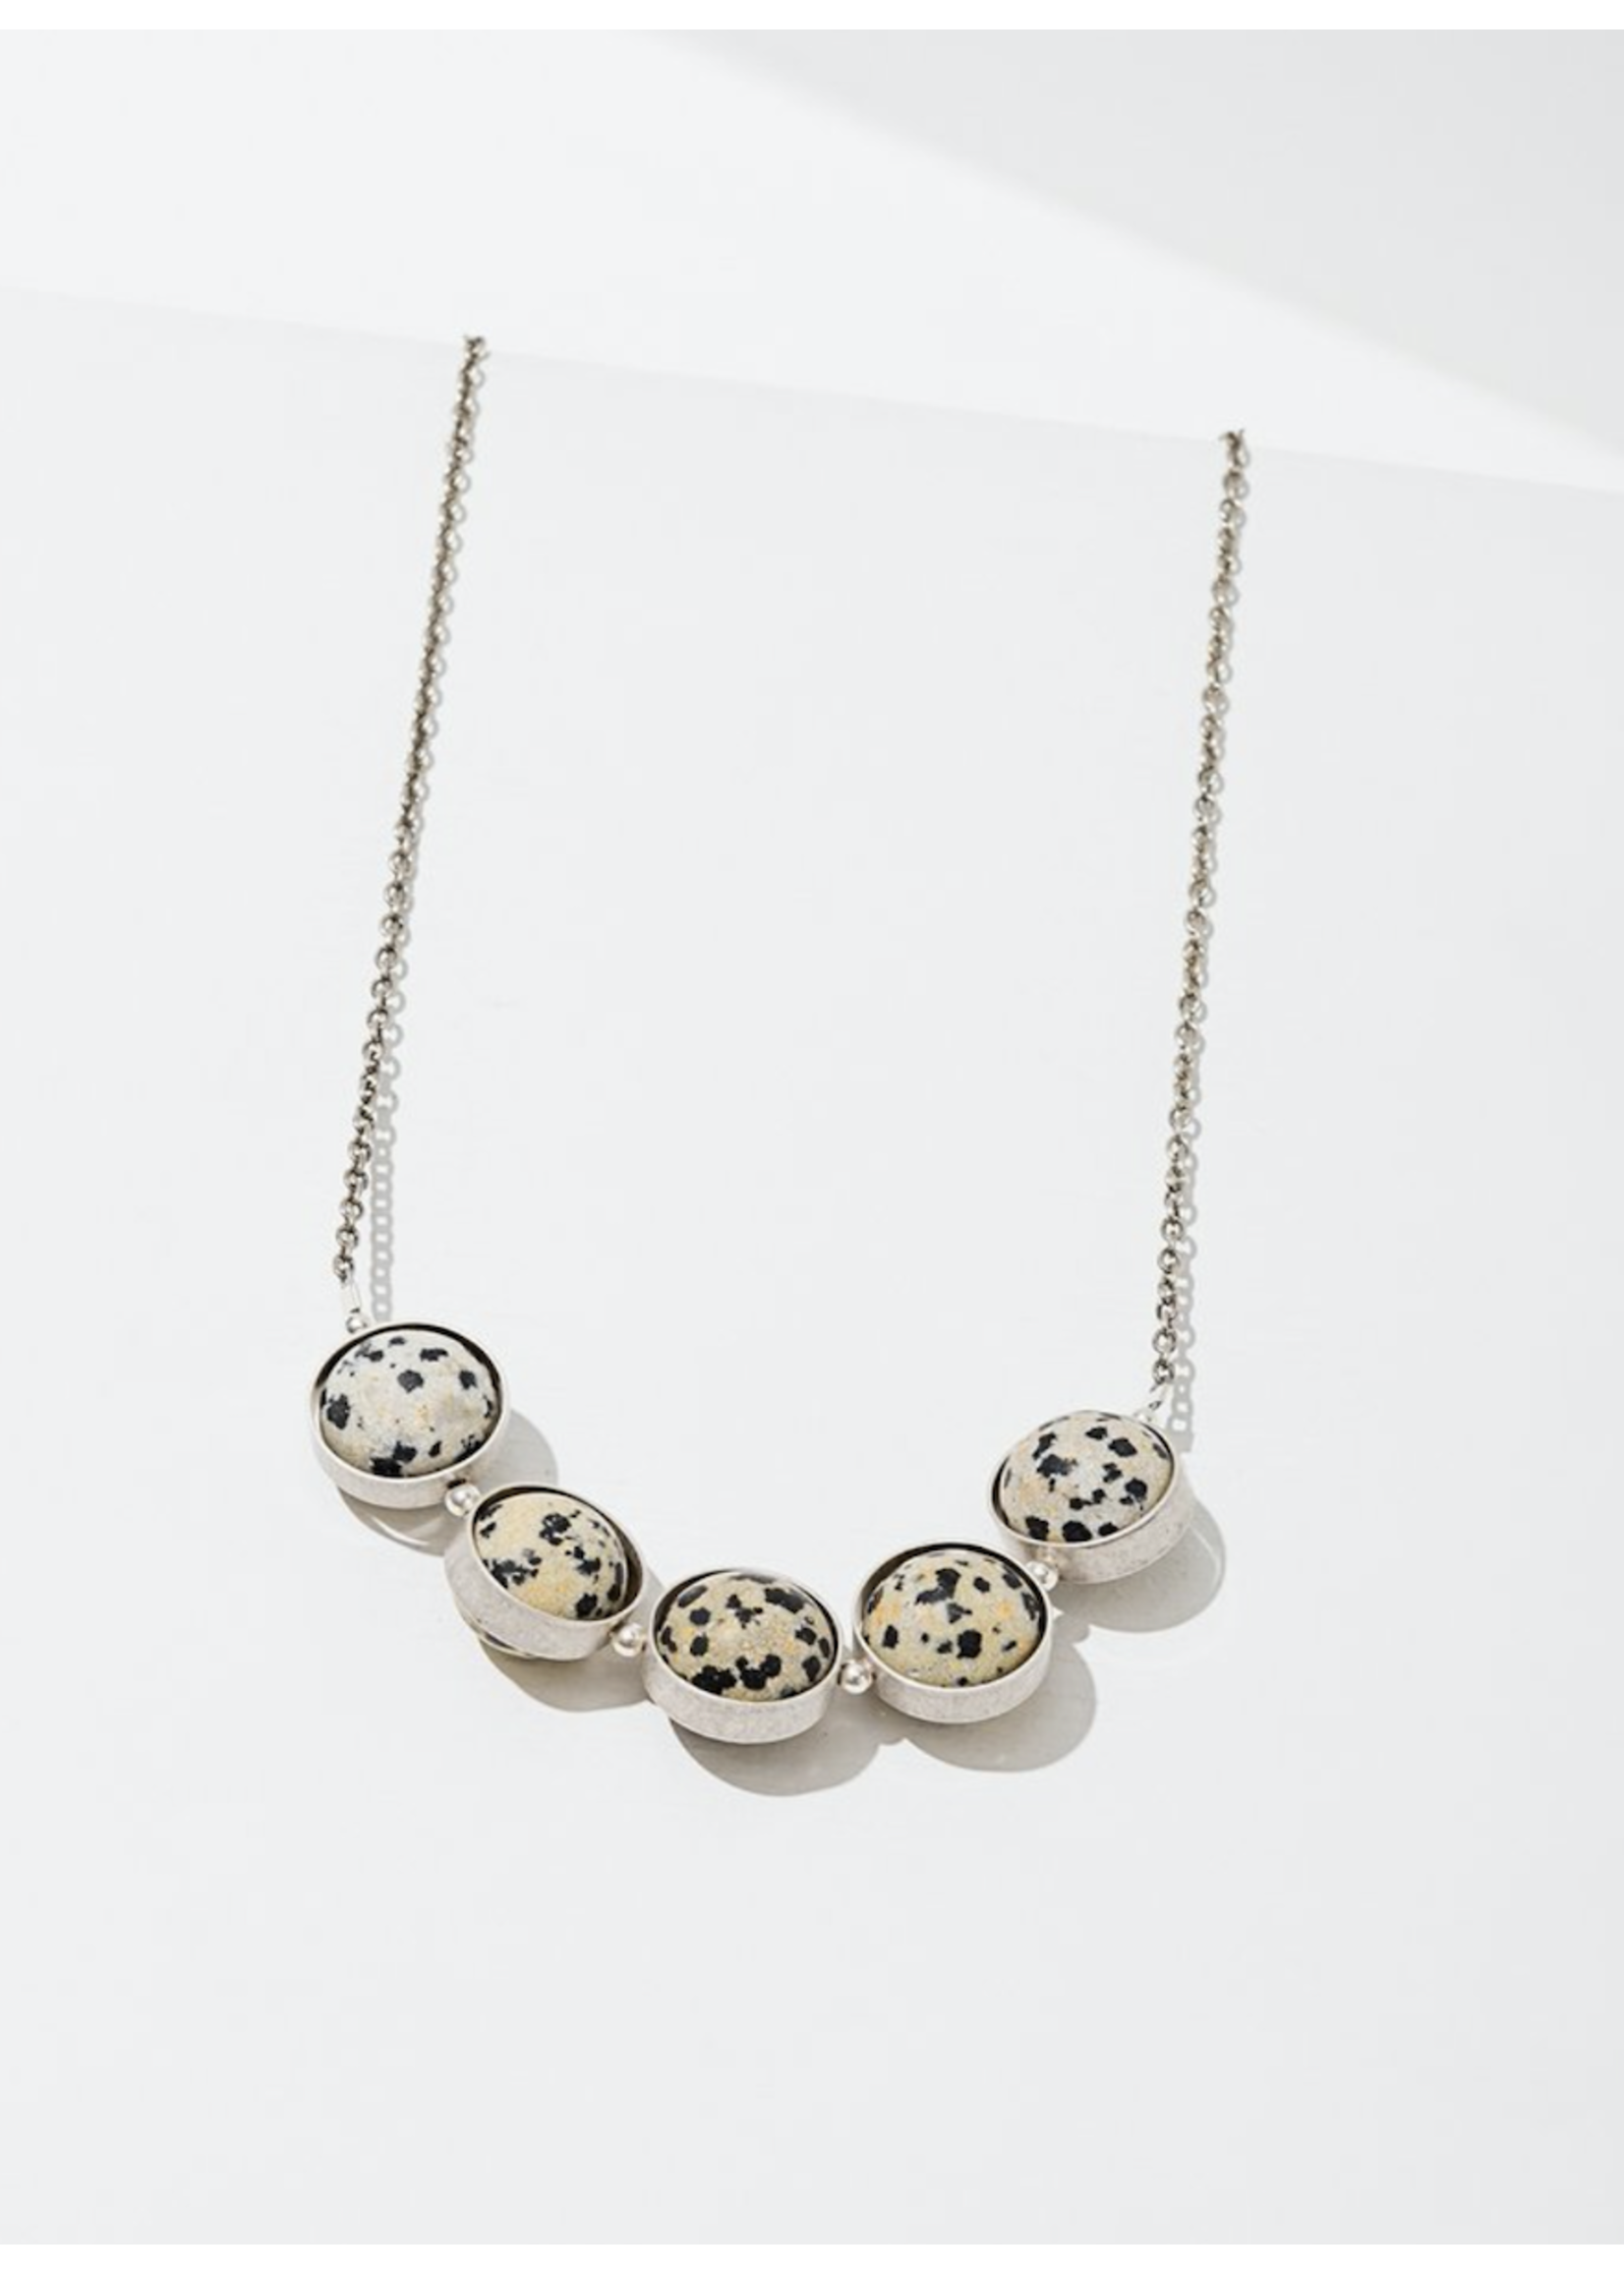 Larissa Loden Larissa Loden Alignment Dalmatian Jasper Necklace